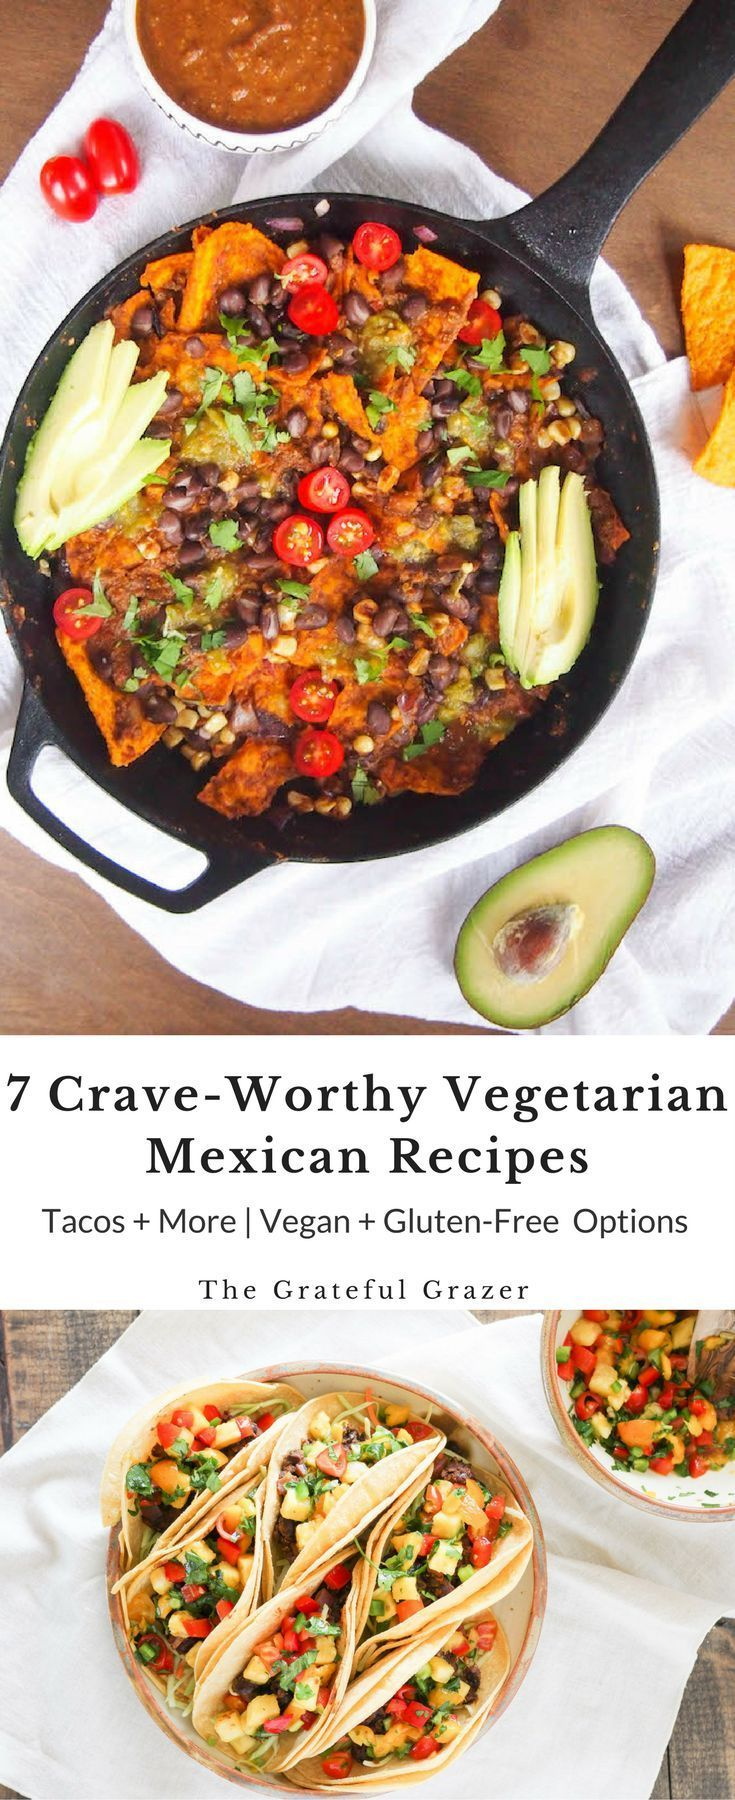 Vegetarian Mexican recipes don't have to be complicated